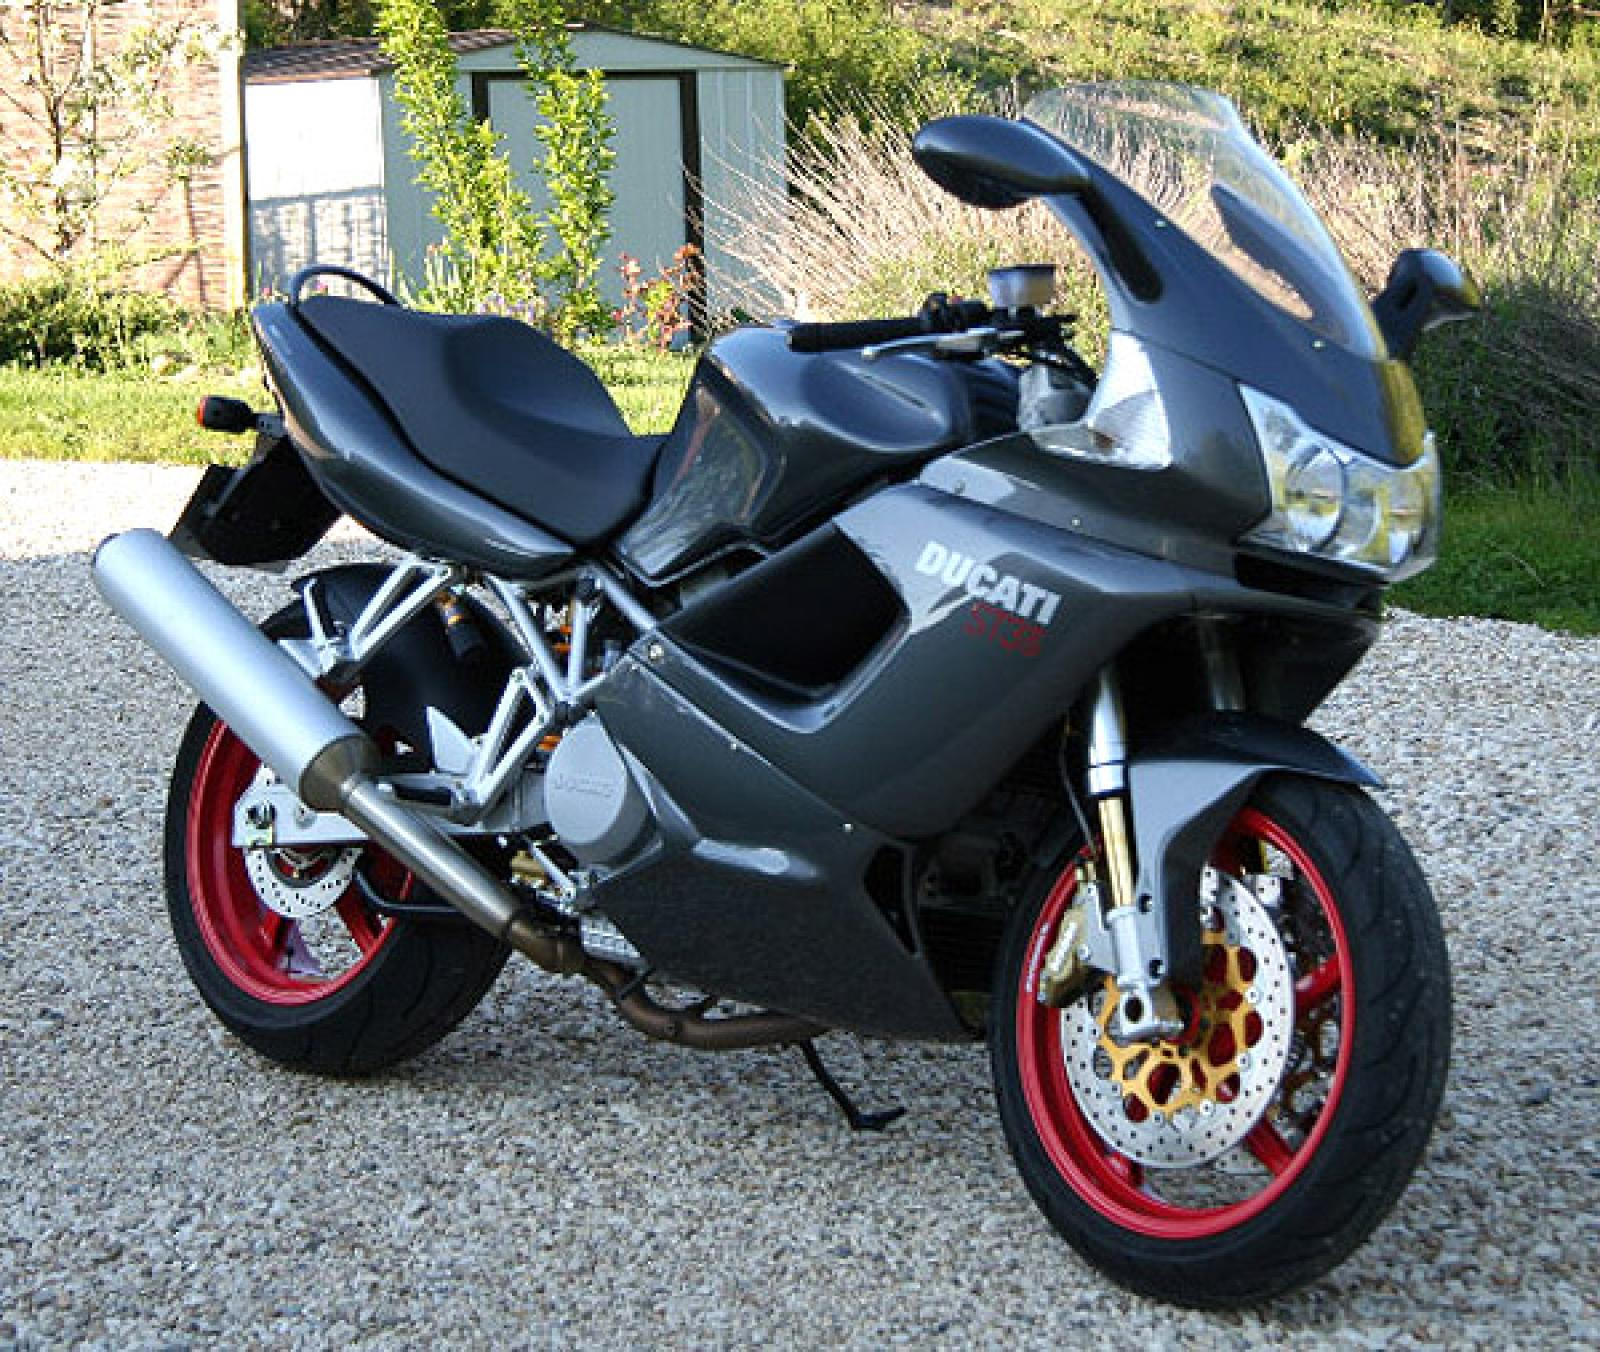 Ducati ST3 S ABS 2006 images #79250